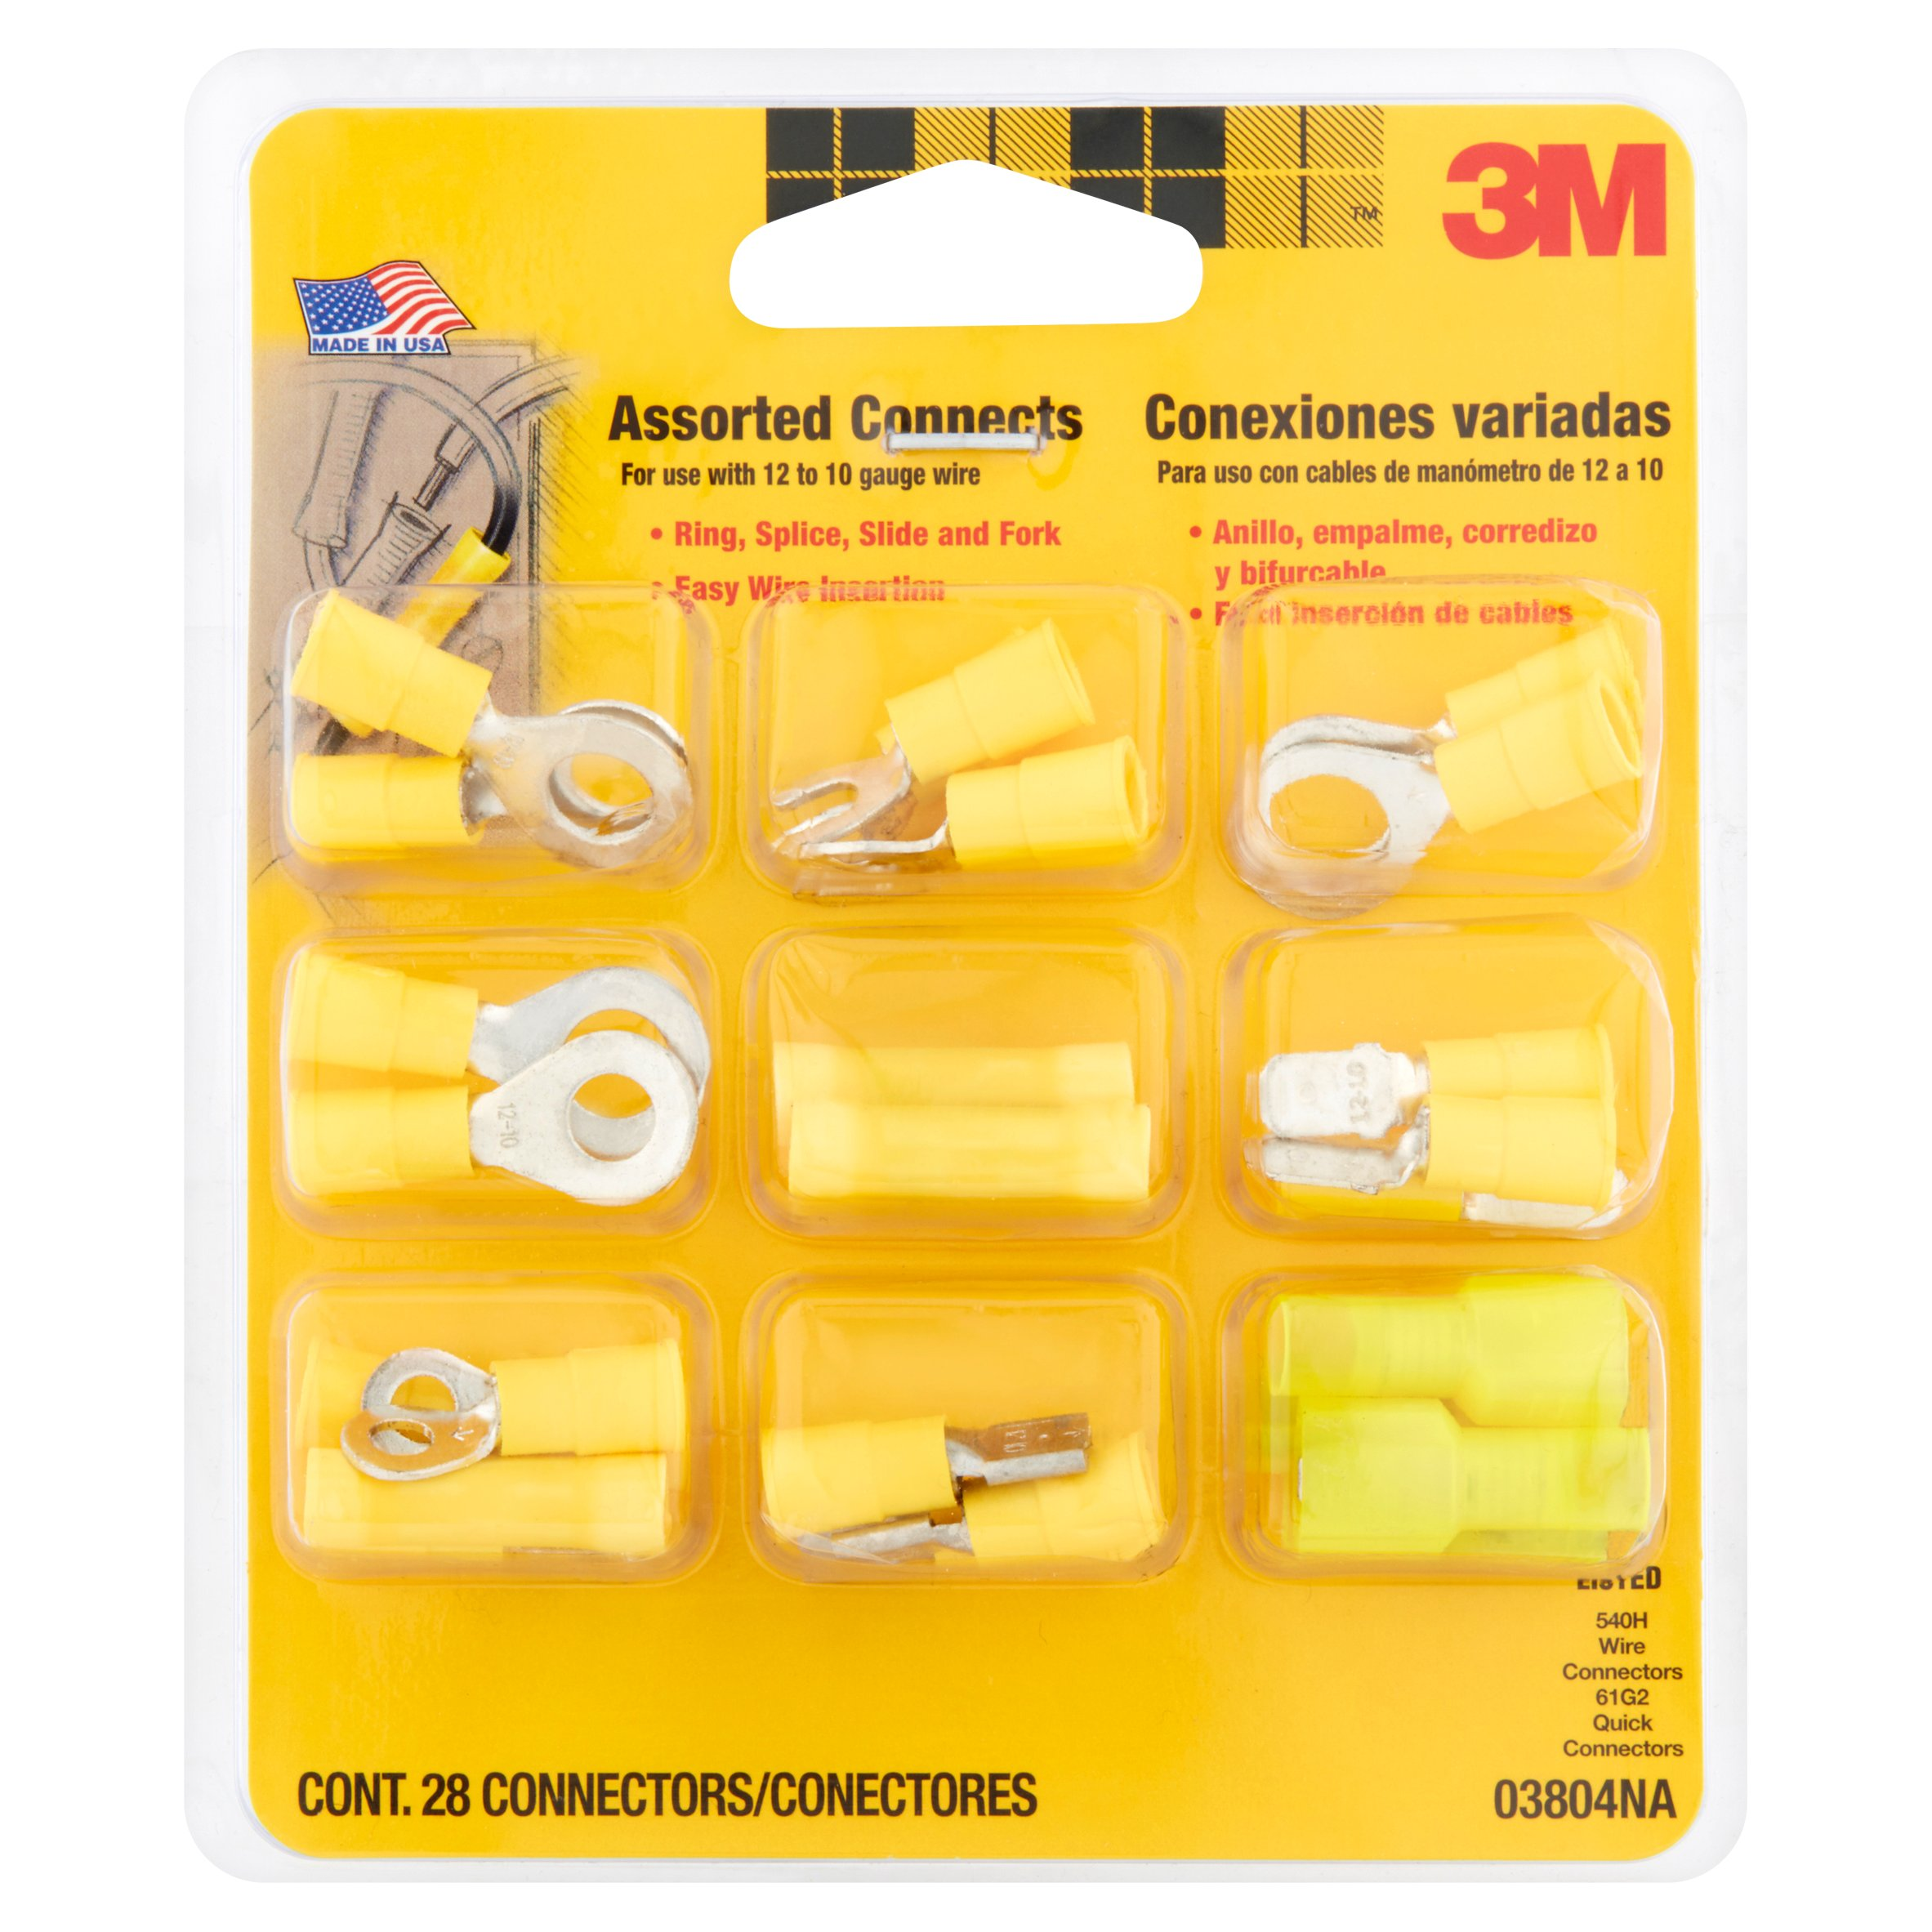 3M Assorted Connects 28 count